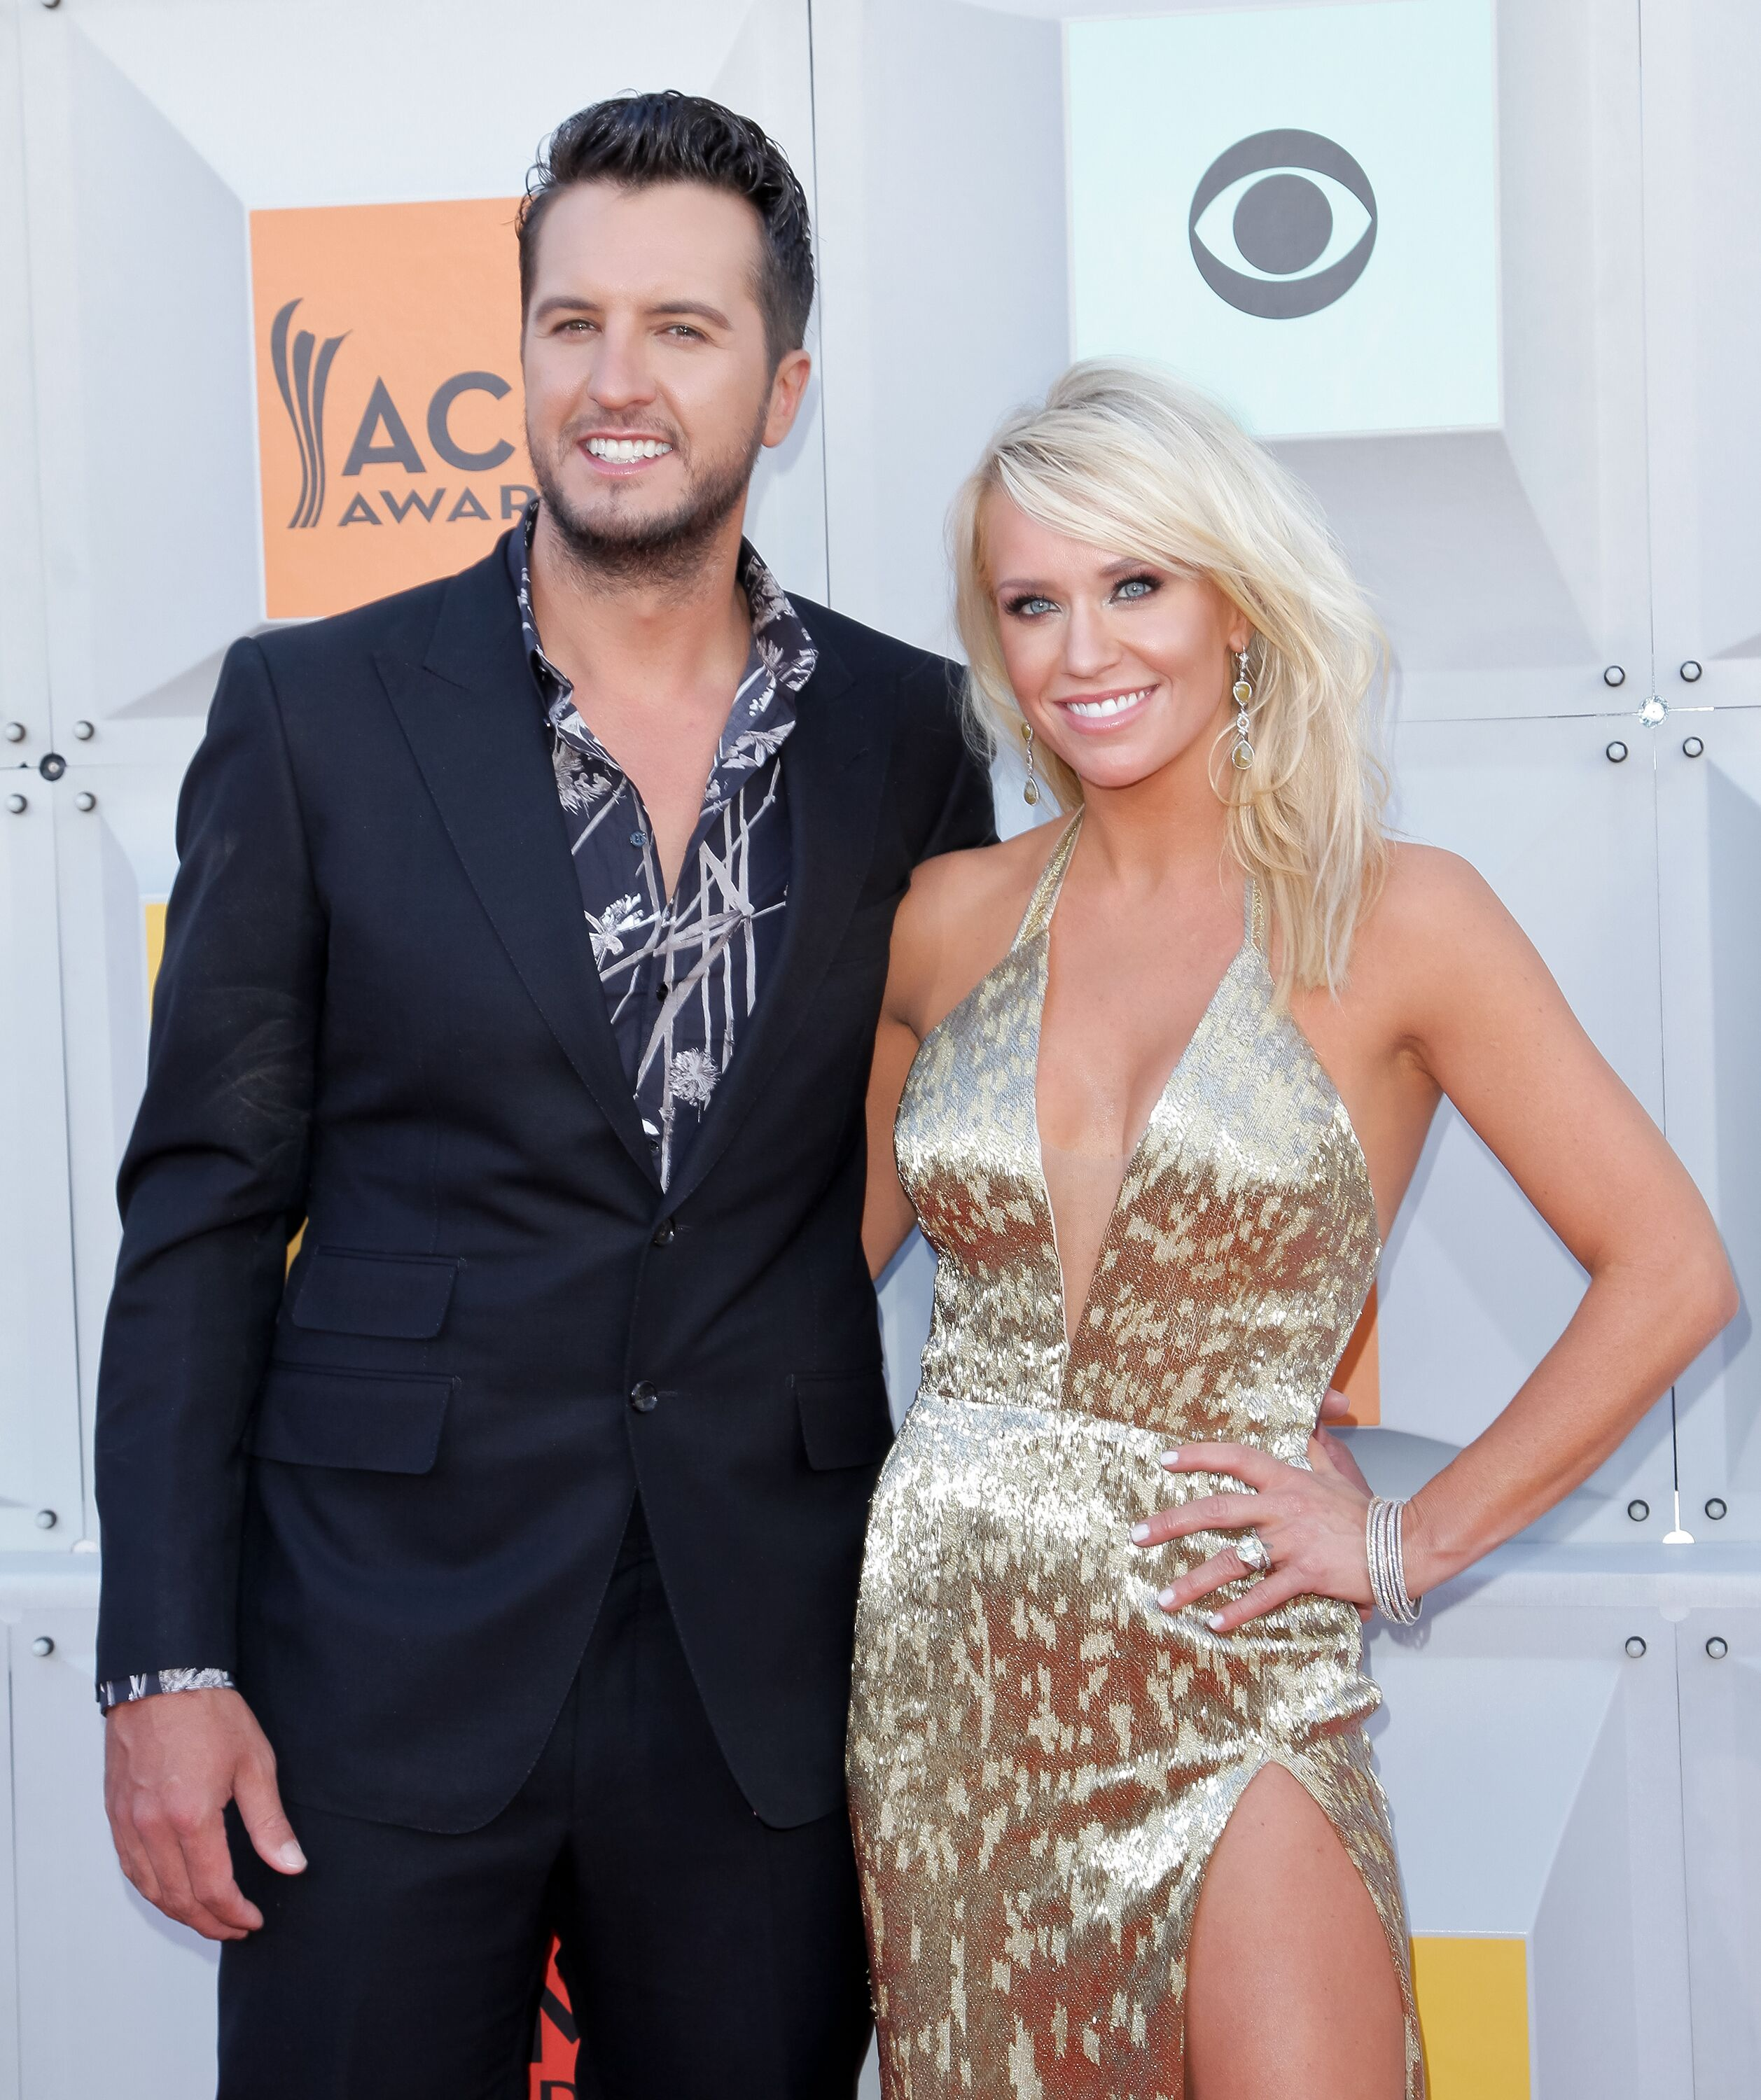 Luke Bryan and Caroline Boyer attend the 51st Academy of Country Music Awards at MGM Grand Garden Arena on April 3, 2016 | Photo: Getty Images